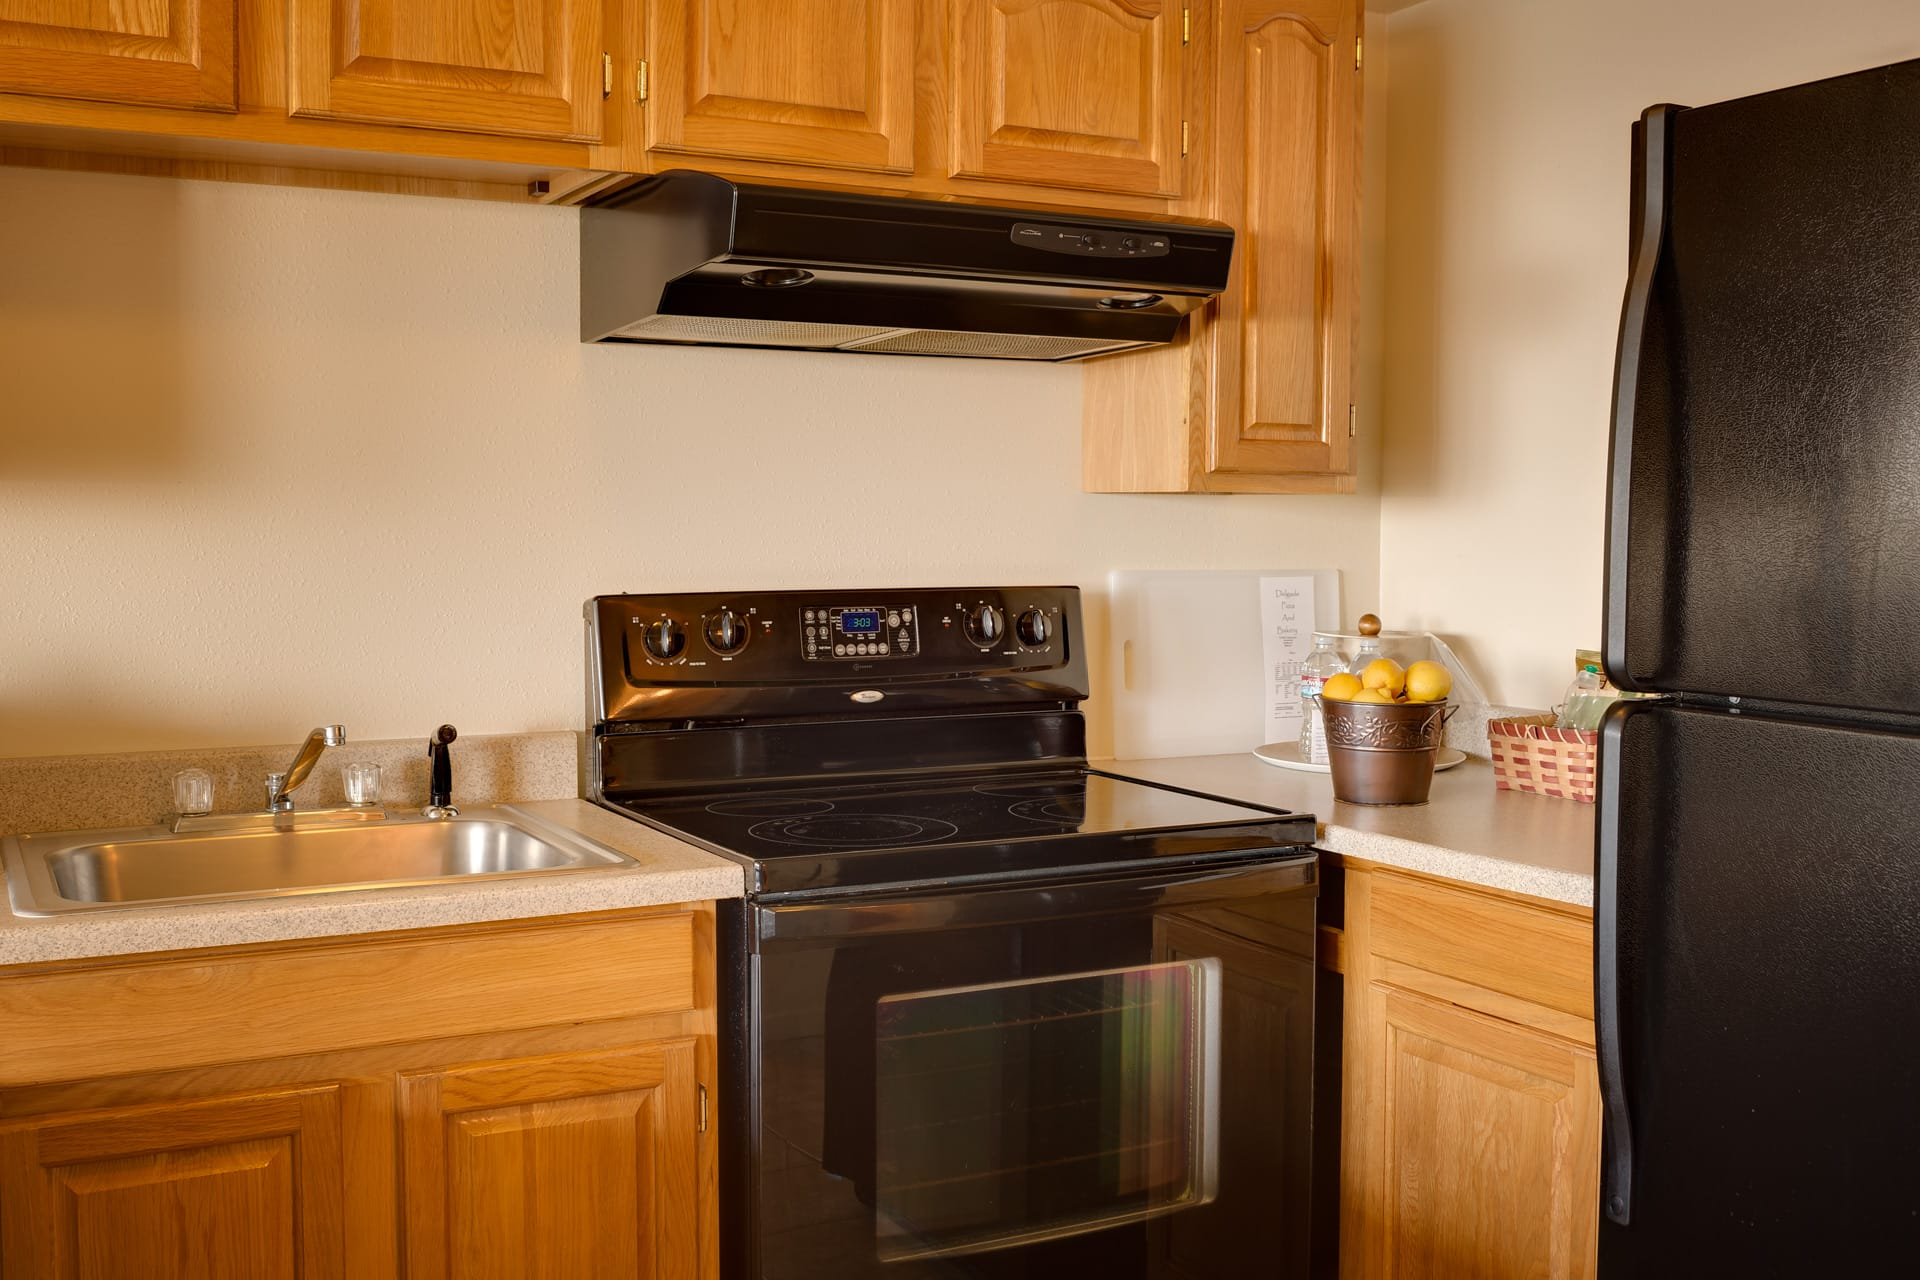 Inn of the Lost Coast Shelter Cove extended stay Kitchen Suite with full-size stove, oven, microwave and refrigerator.